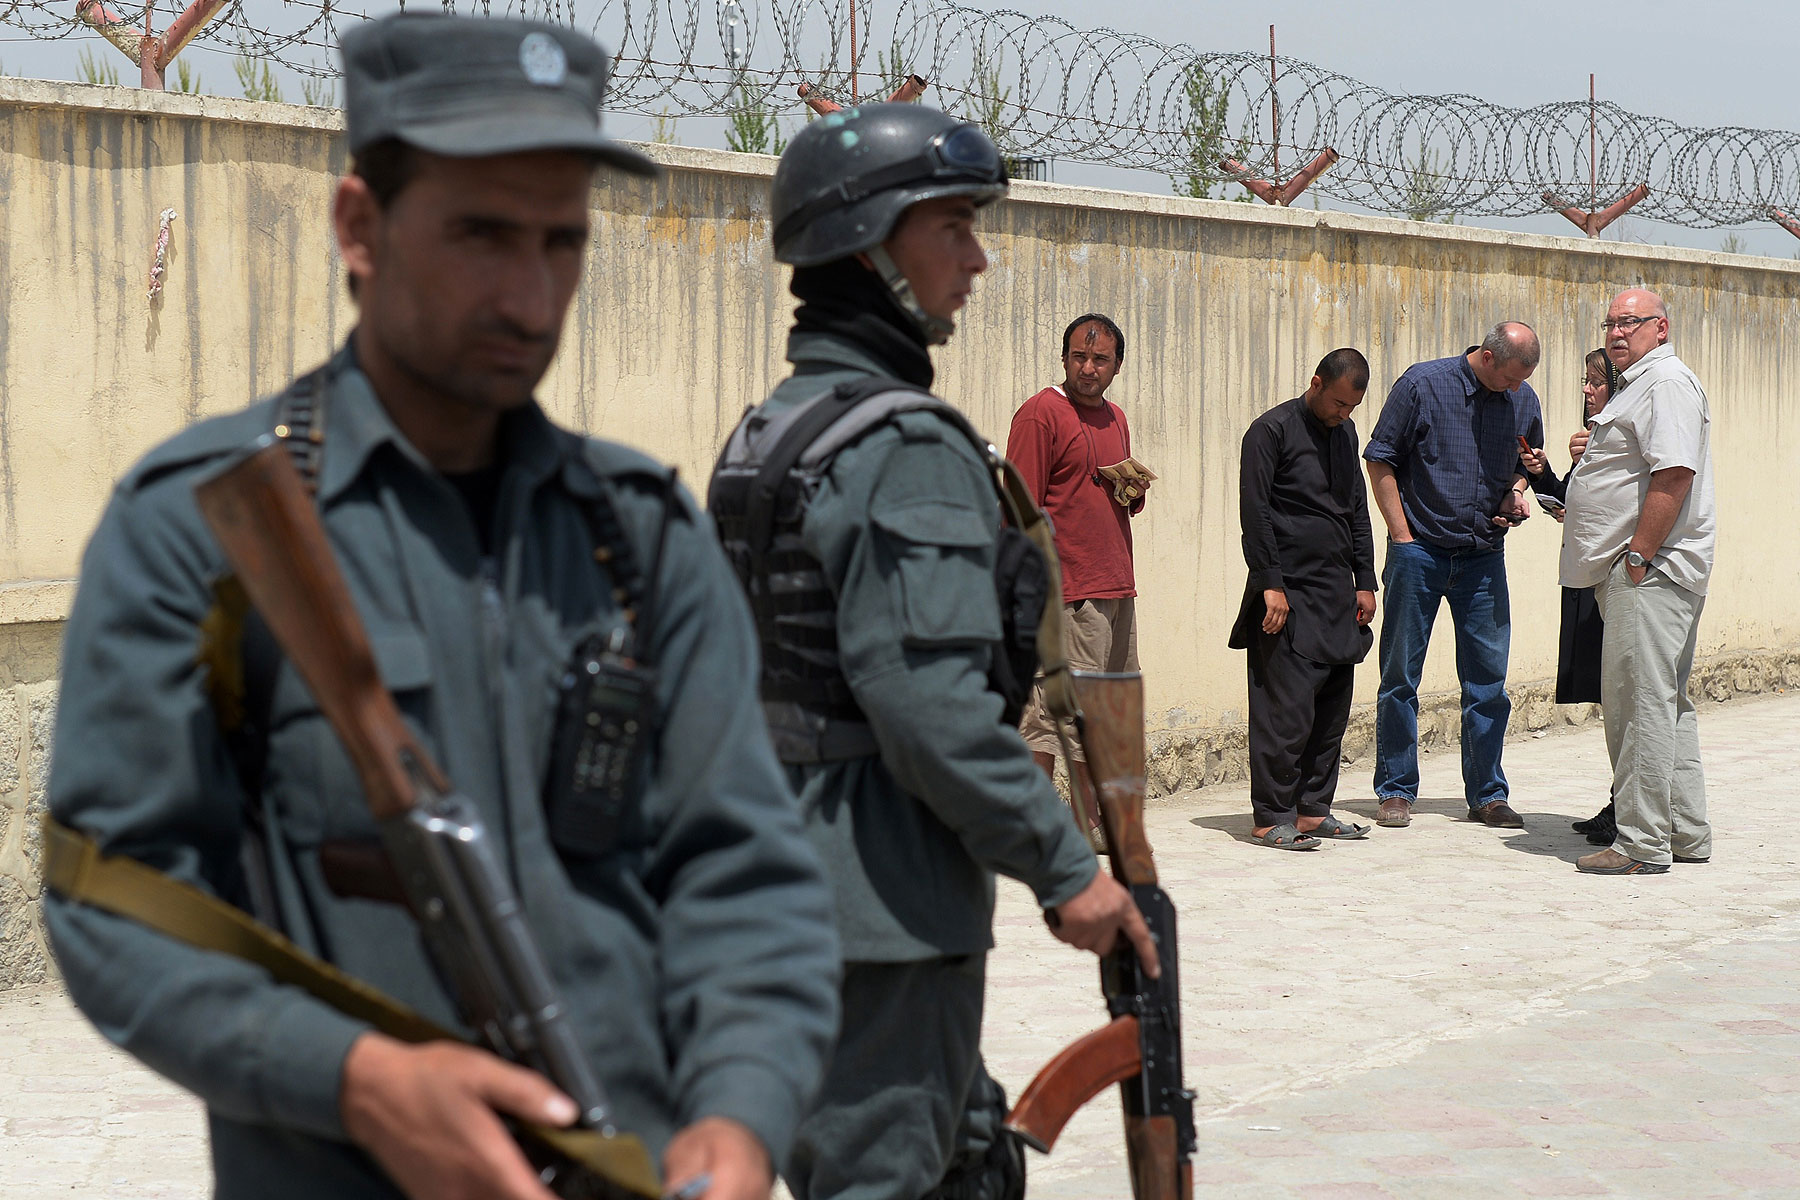 Afghan policemen keep watch as foreign nationals wait outside the Cure hospital in Kabul on April 24, 2014